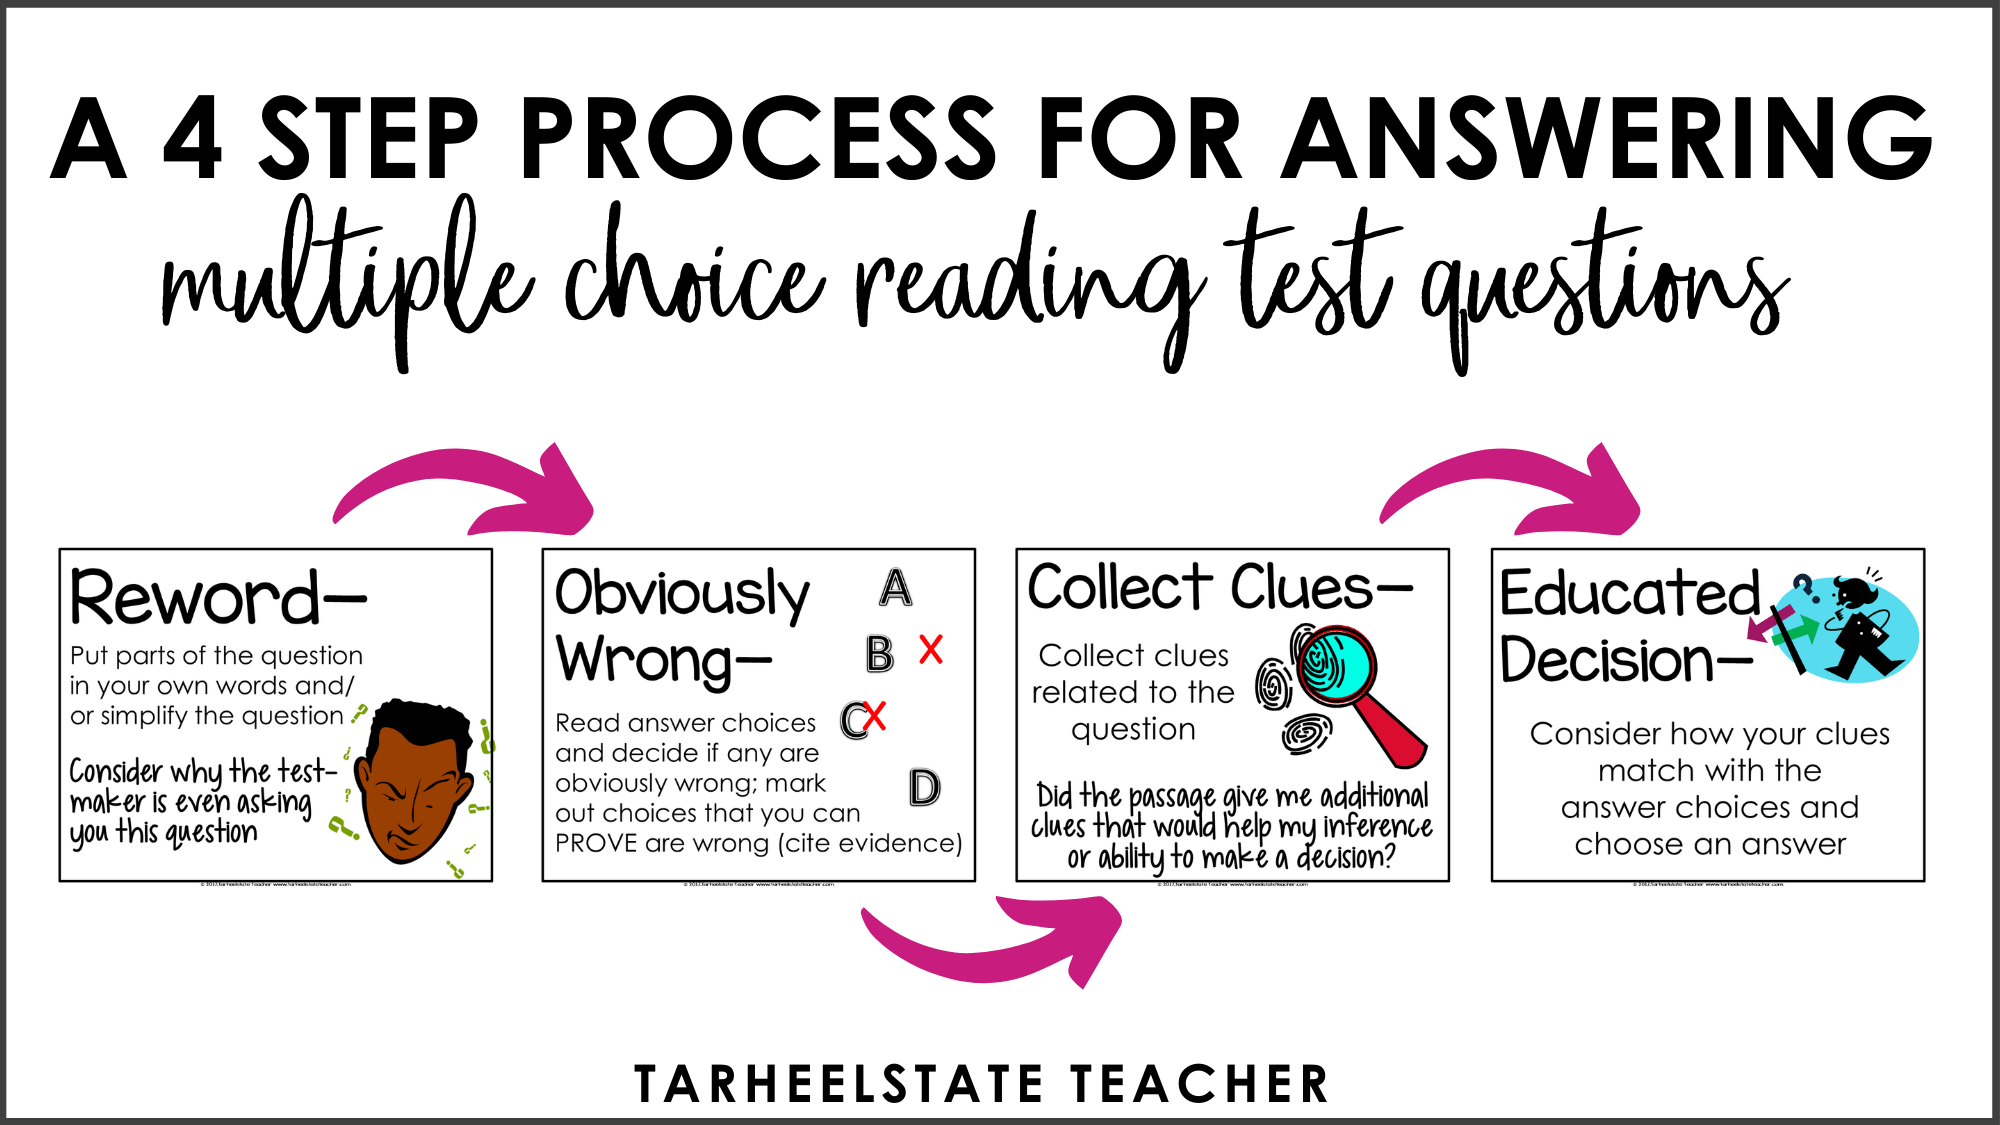 medium resolution of A 4 Step Process for Answering Multiple Choice Reading Questions —  Tarheelstate Teacher